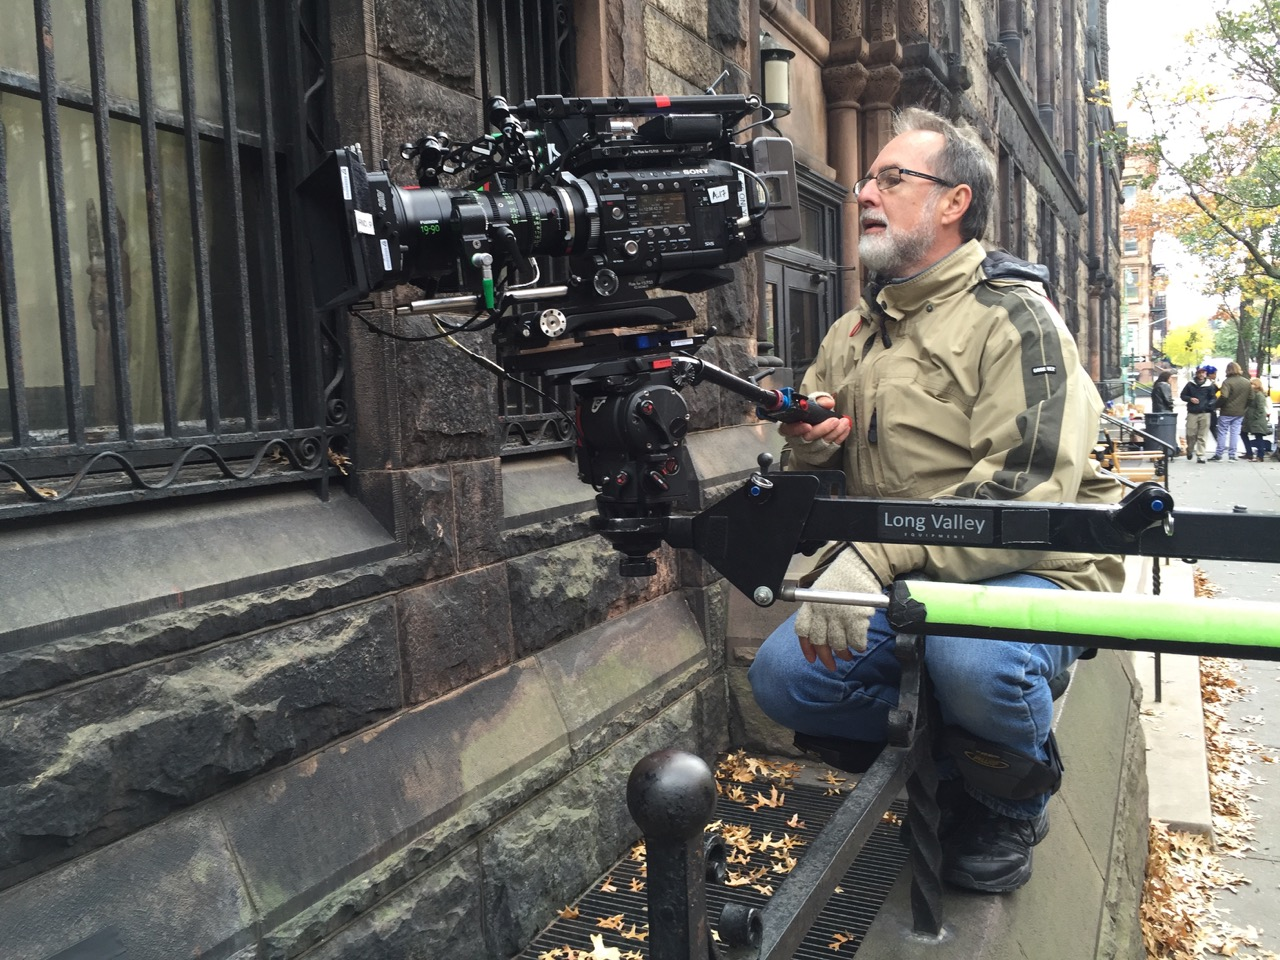 Paul Koestner Cinematographer